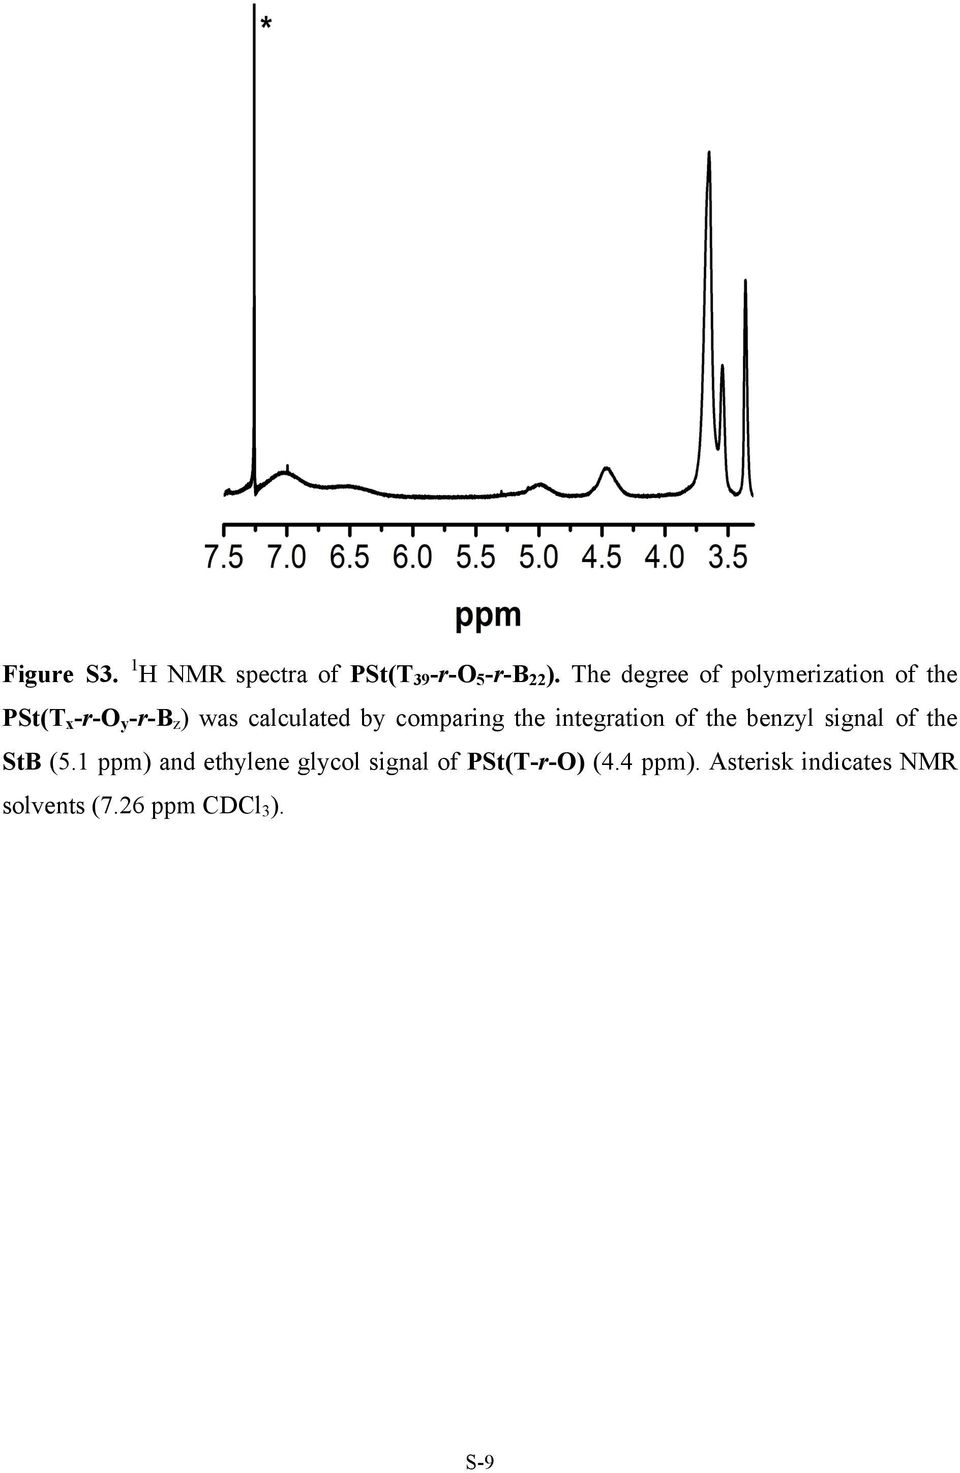 comparing the integration of the benzyl signal of the StB (5.